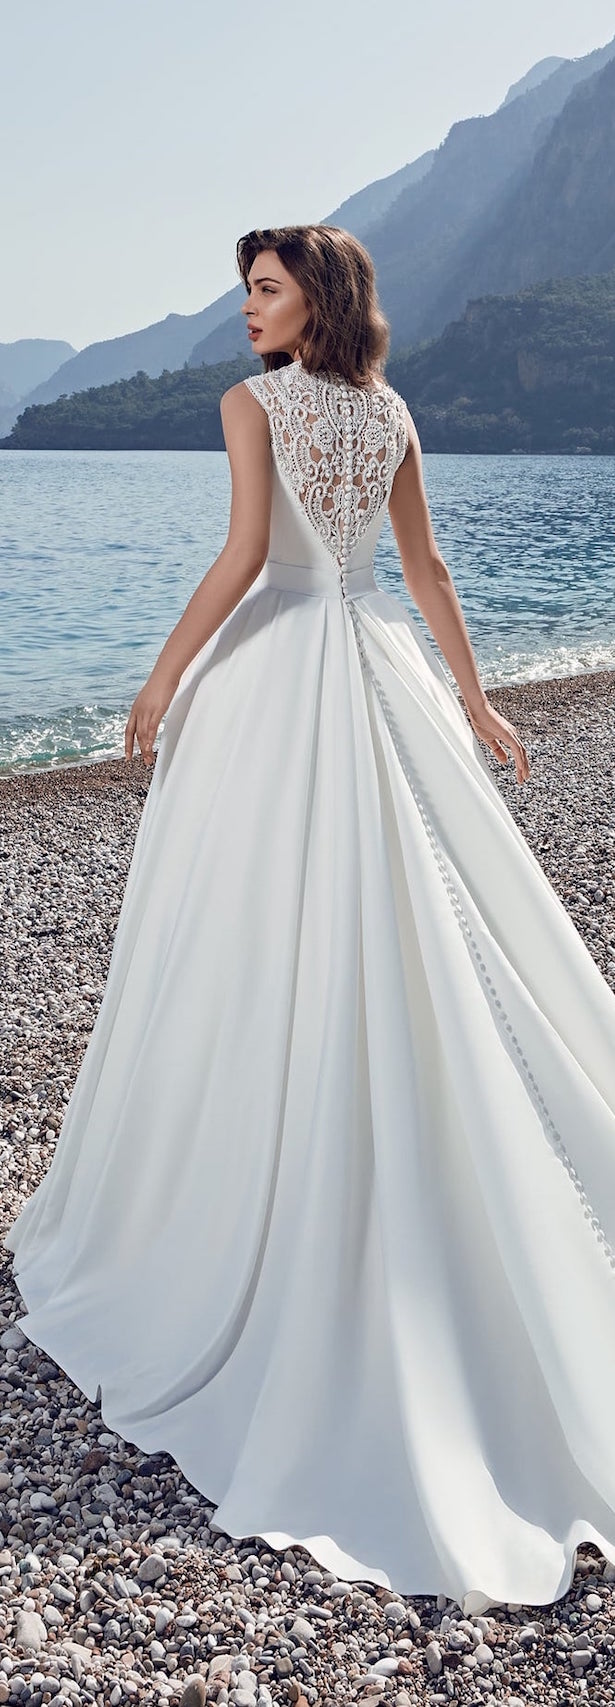 Lanesta Bridal - The Heart of The Ocean Collection